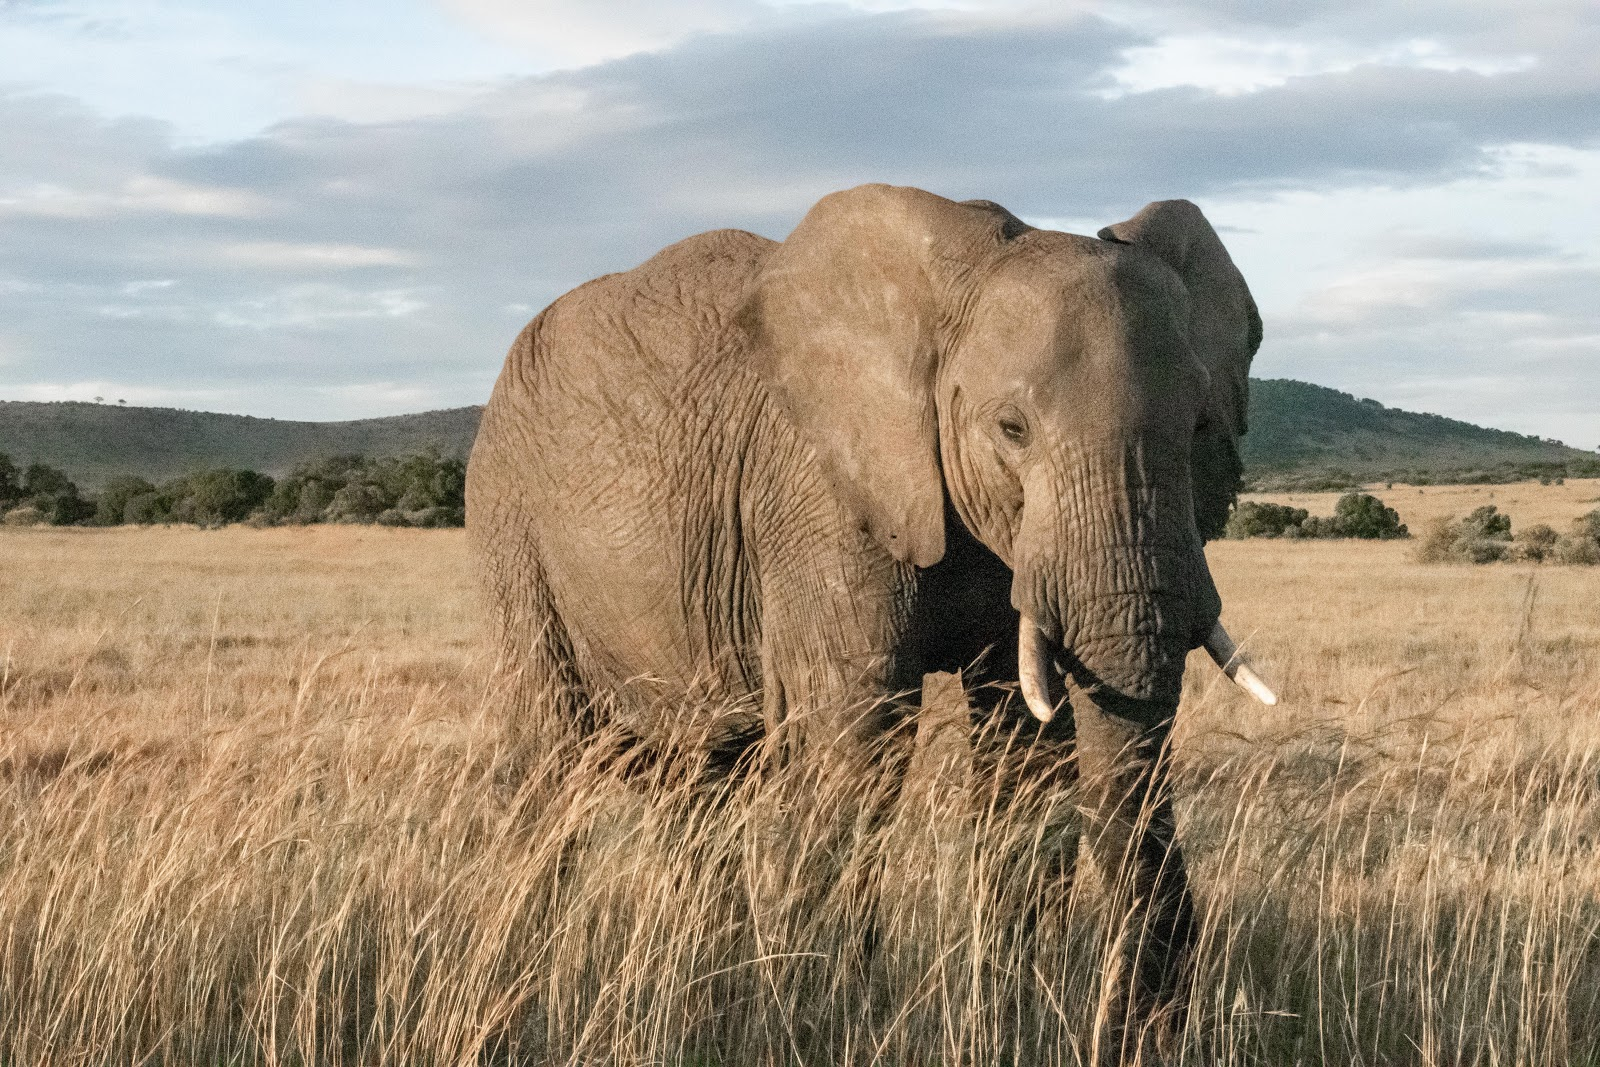 Elephant standing in tall brown grass with mountains and blue sky in the background.